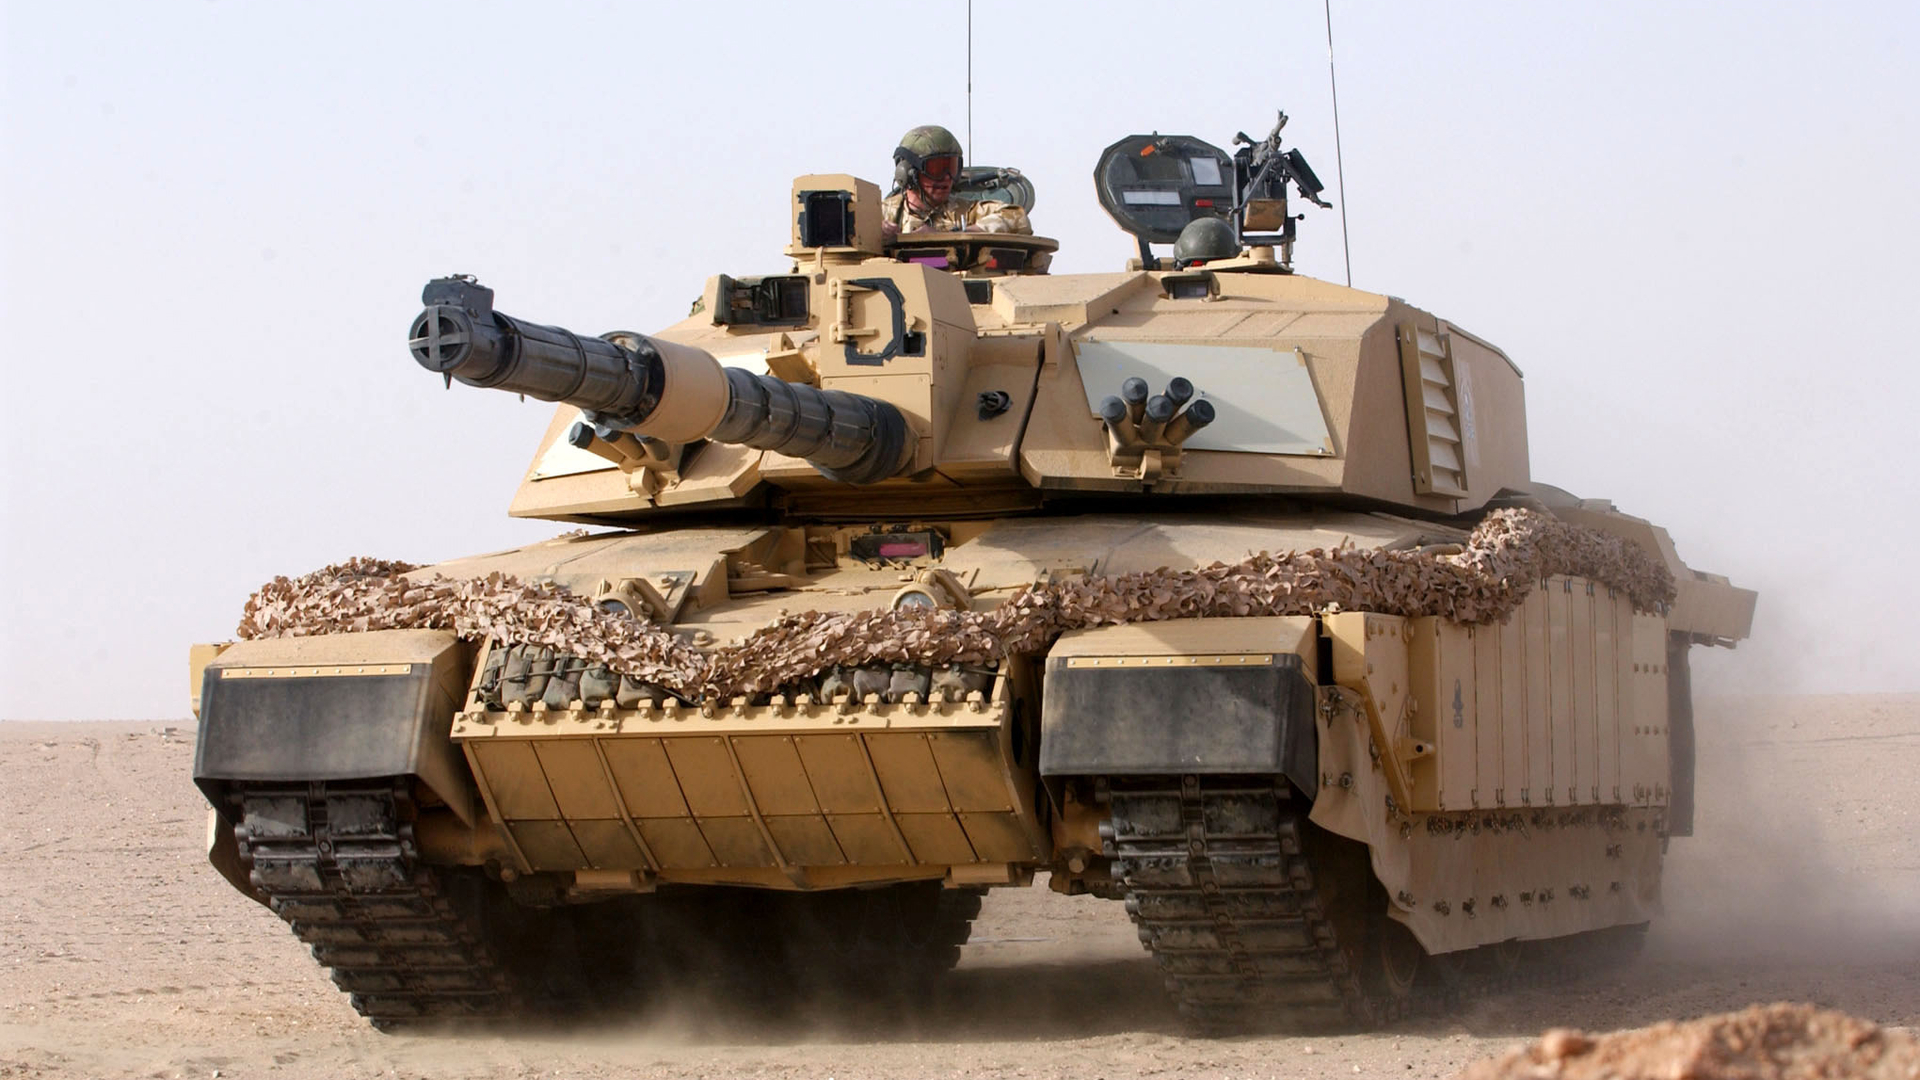 military deserts weapons tanks HD Wallpaper